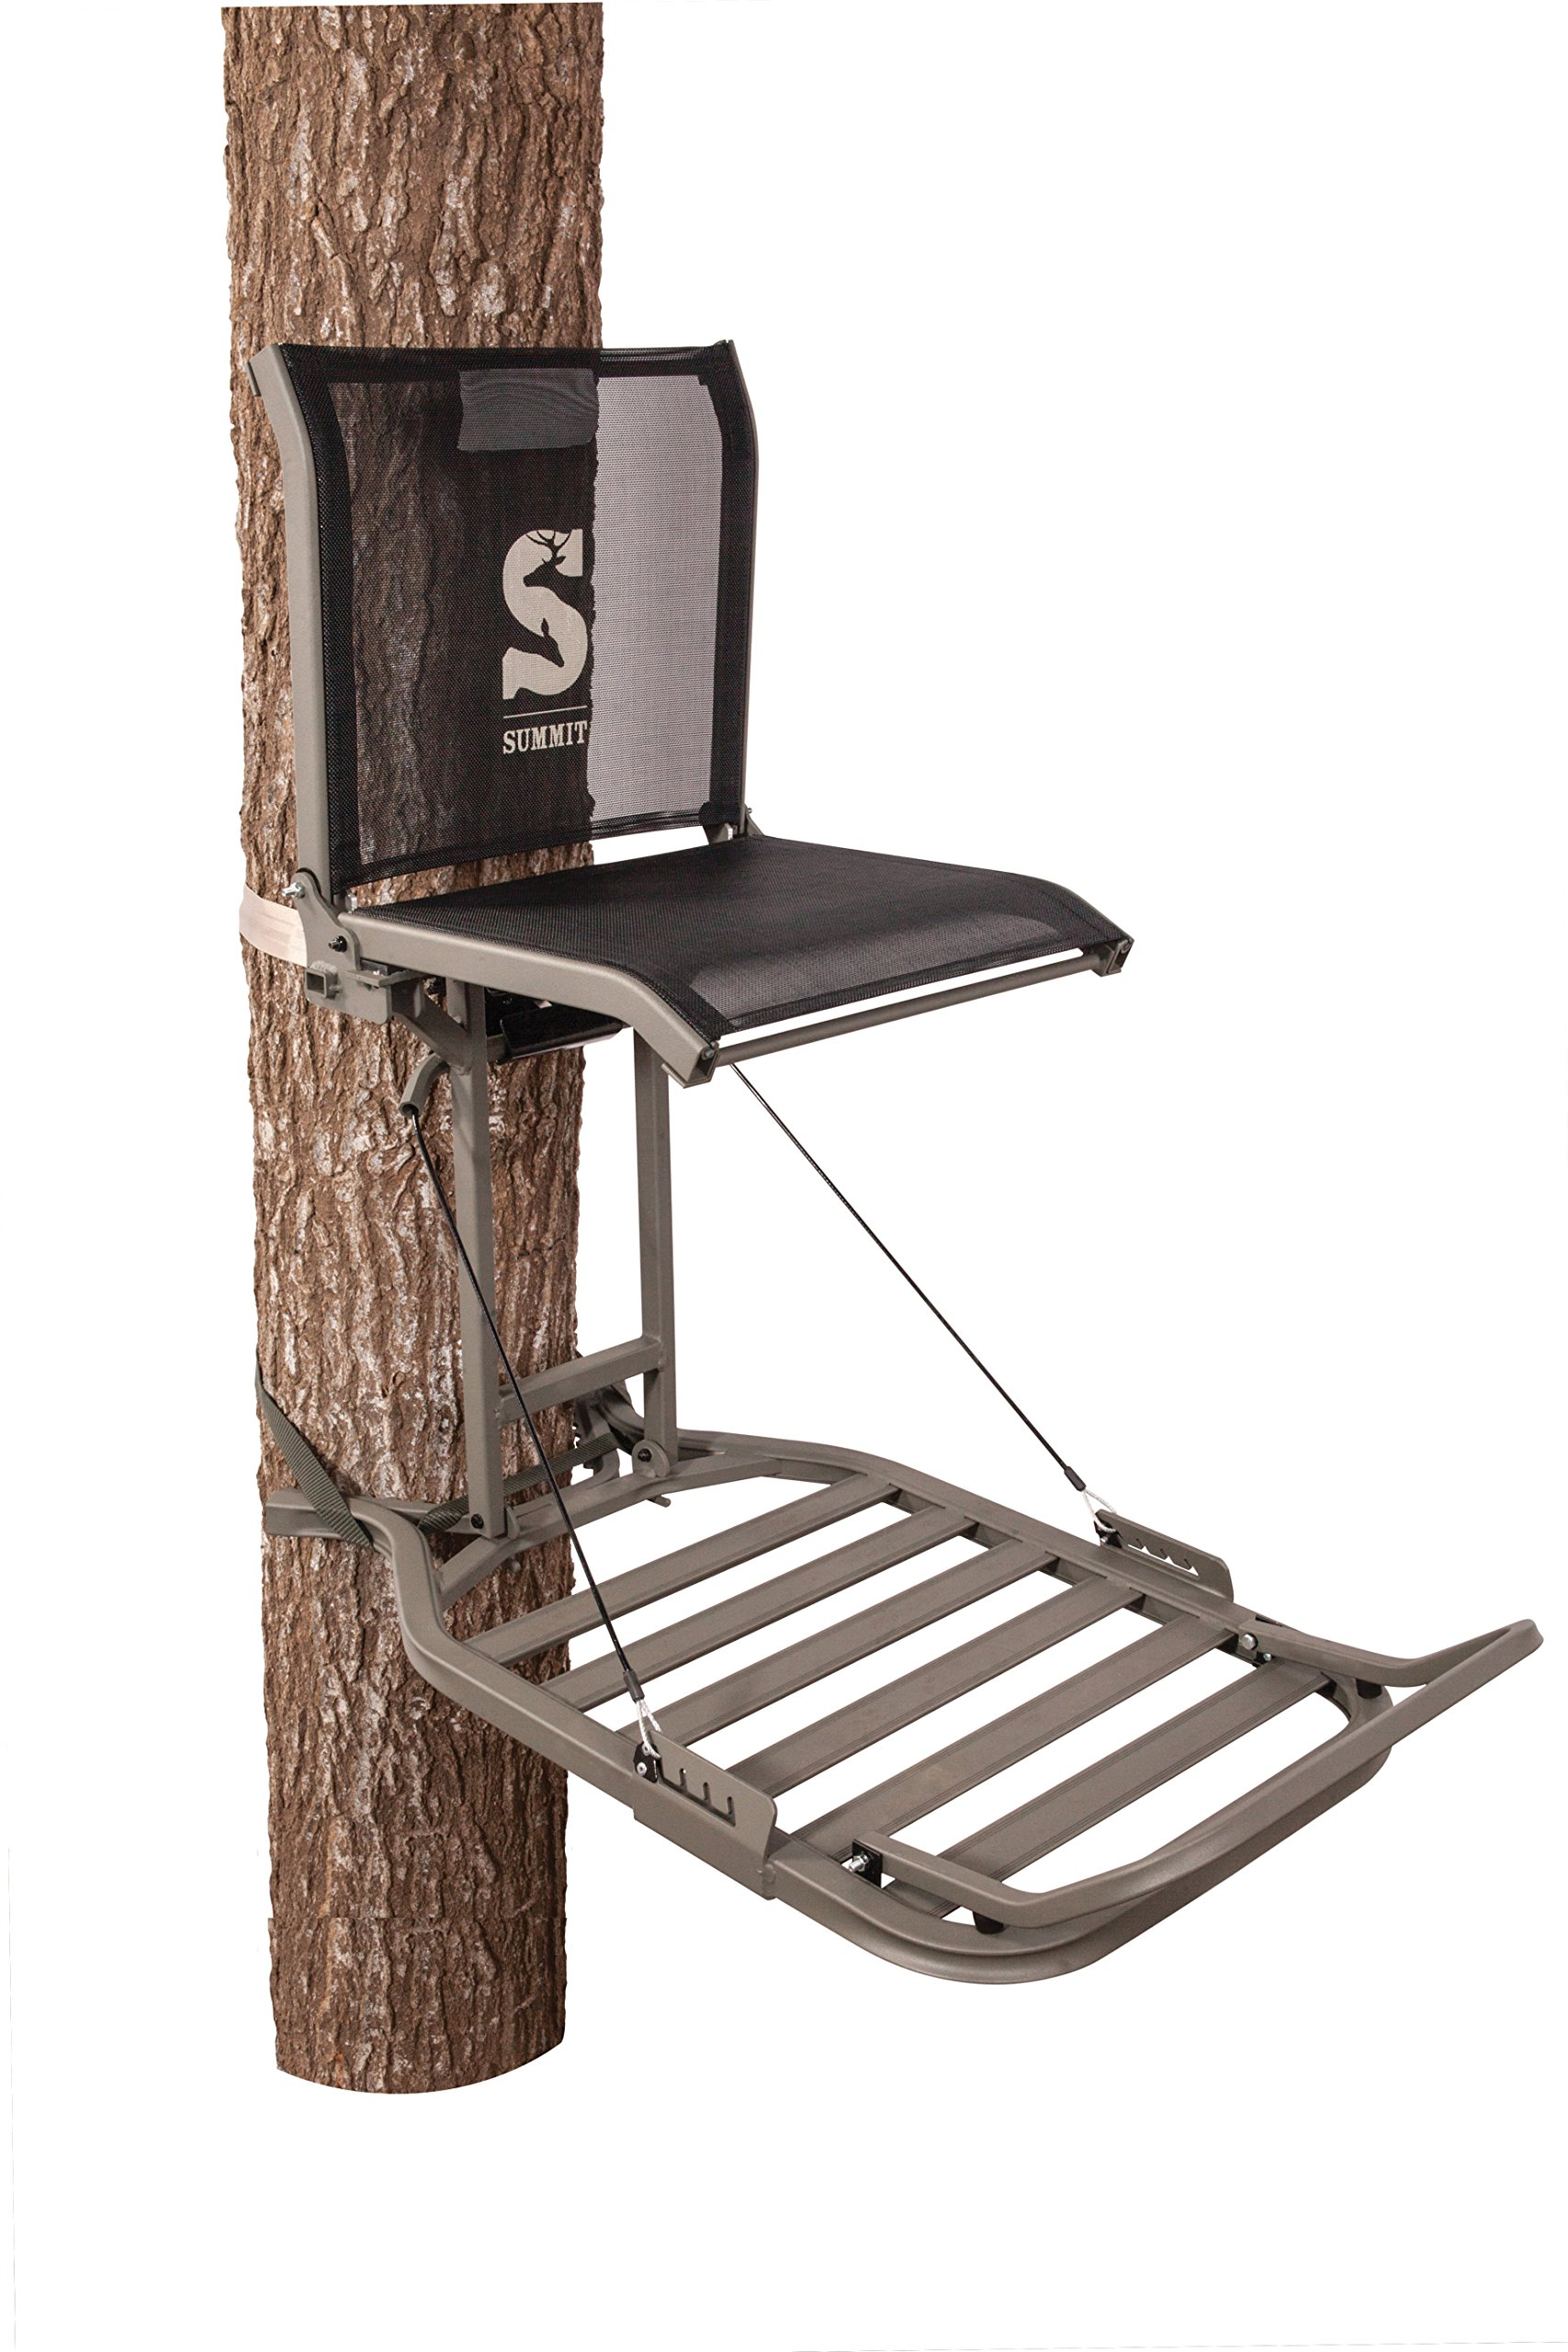 Summit Treestands rsxRaptor Hang On Stand by Summit Treestands (Image #1)